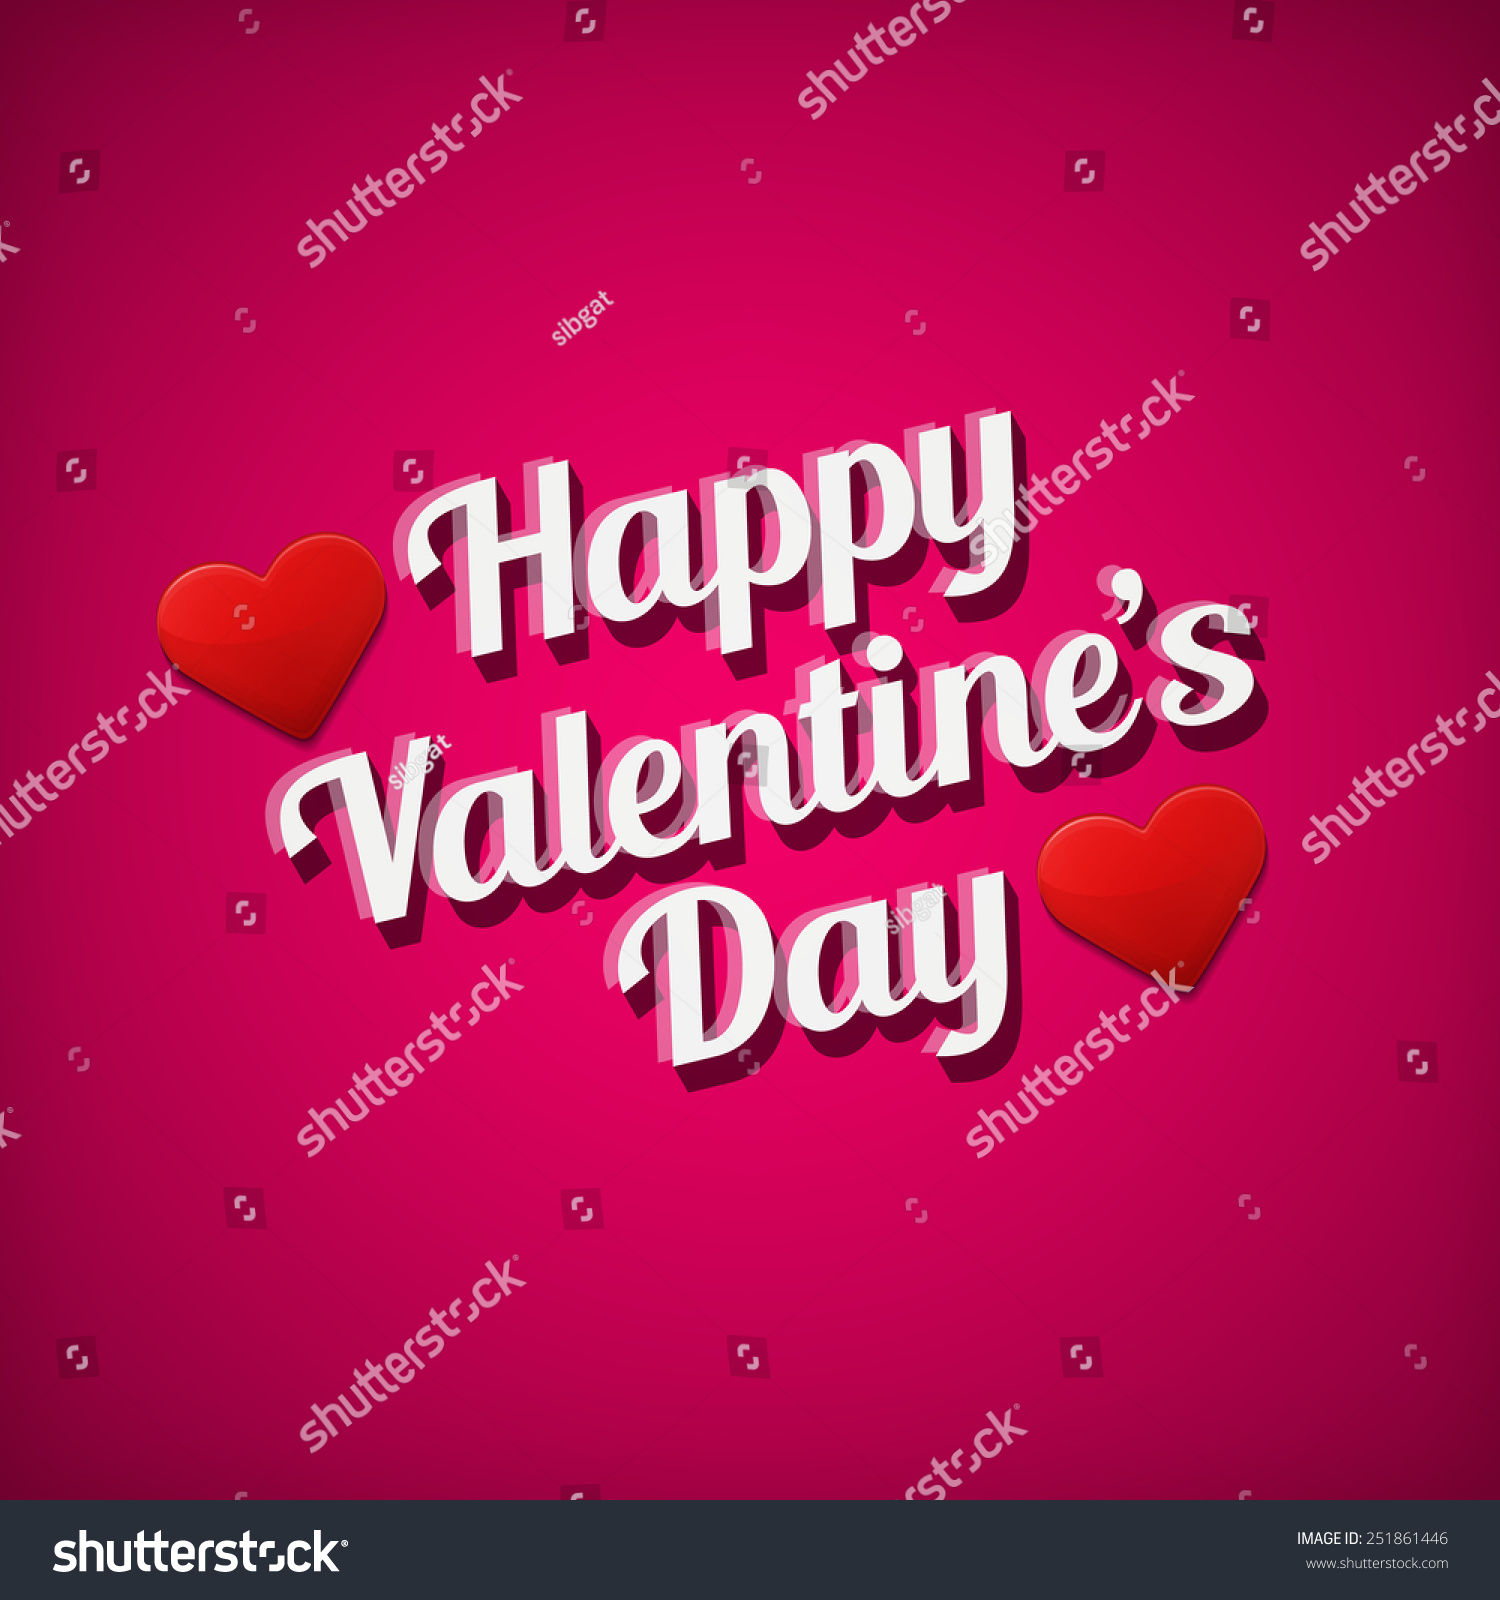 Valentines Day Greetings Card White Text Over Pink Background